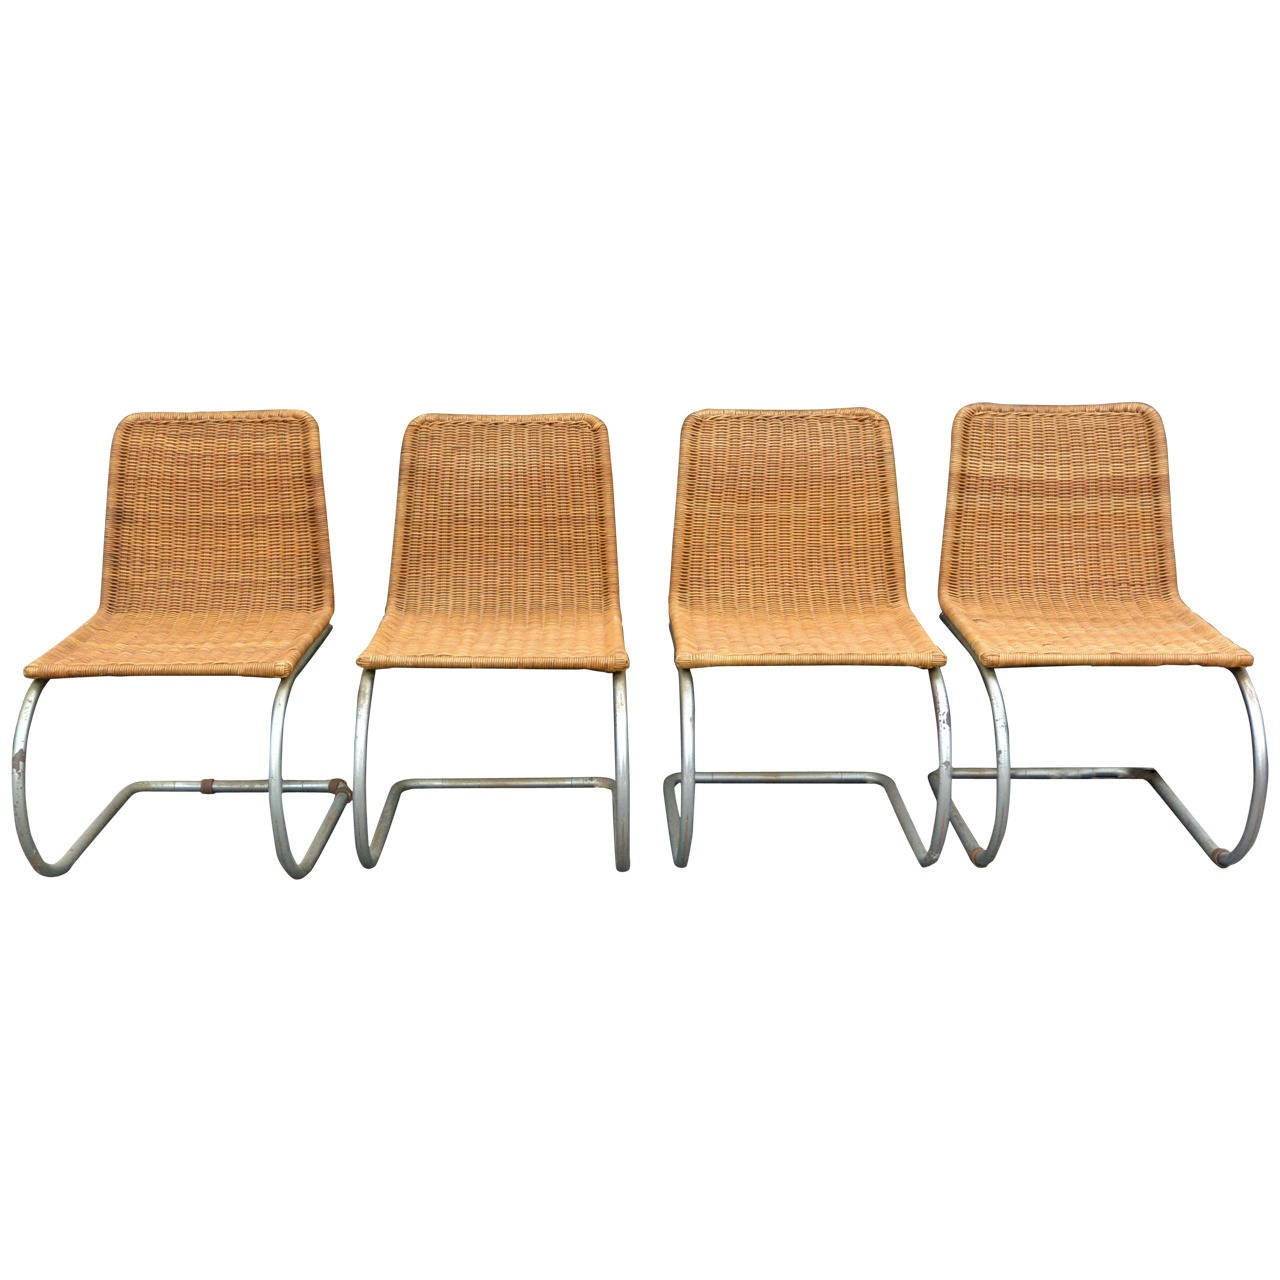 mart stam chair hanging cheap wicker dining chairs at 1stdibs